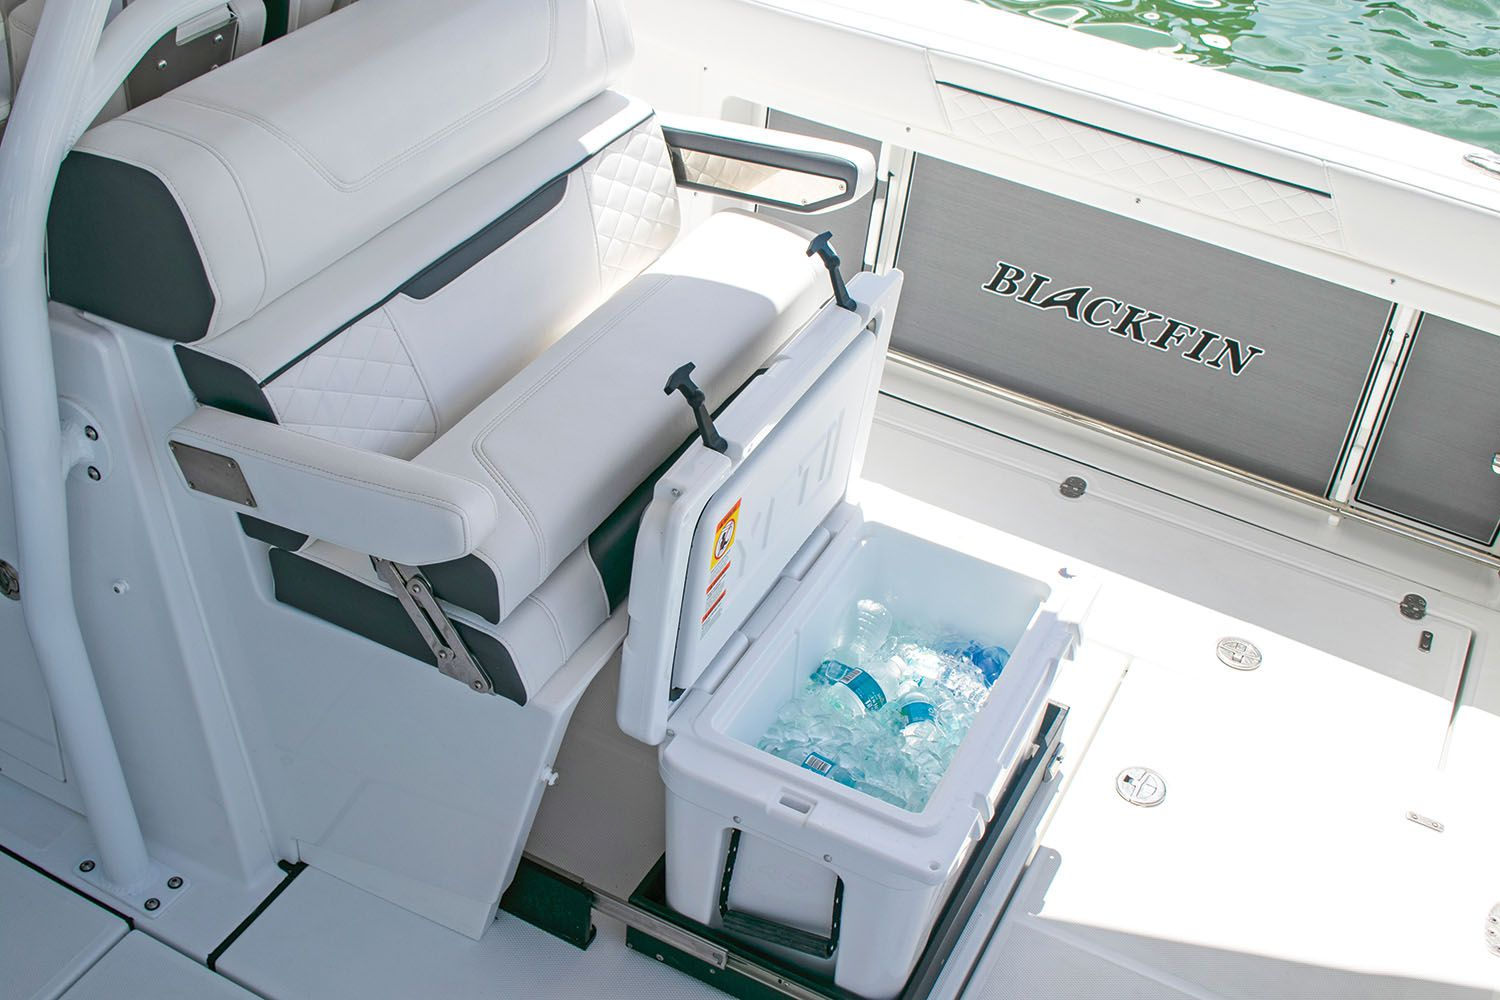 A slide-out cooler complements mezzanine seating, which can be swapped for a tackle-rigging center.